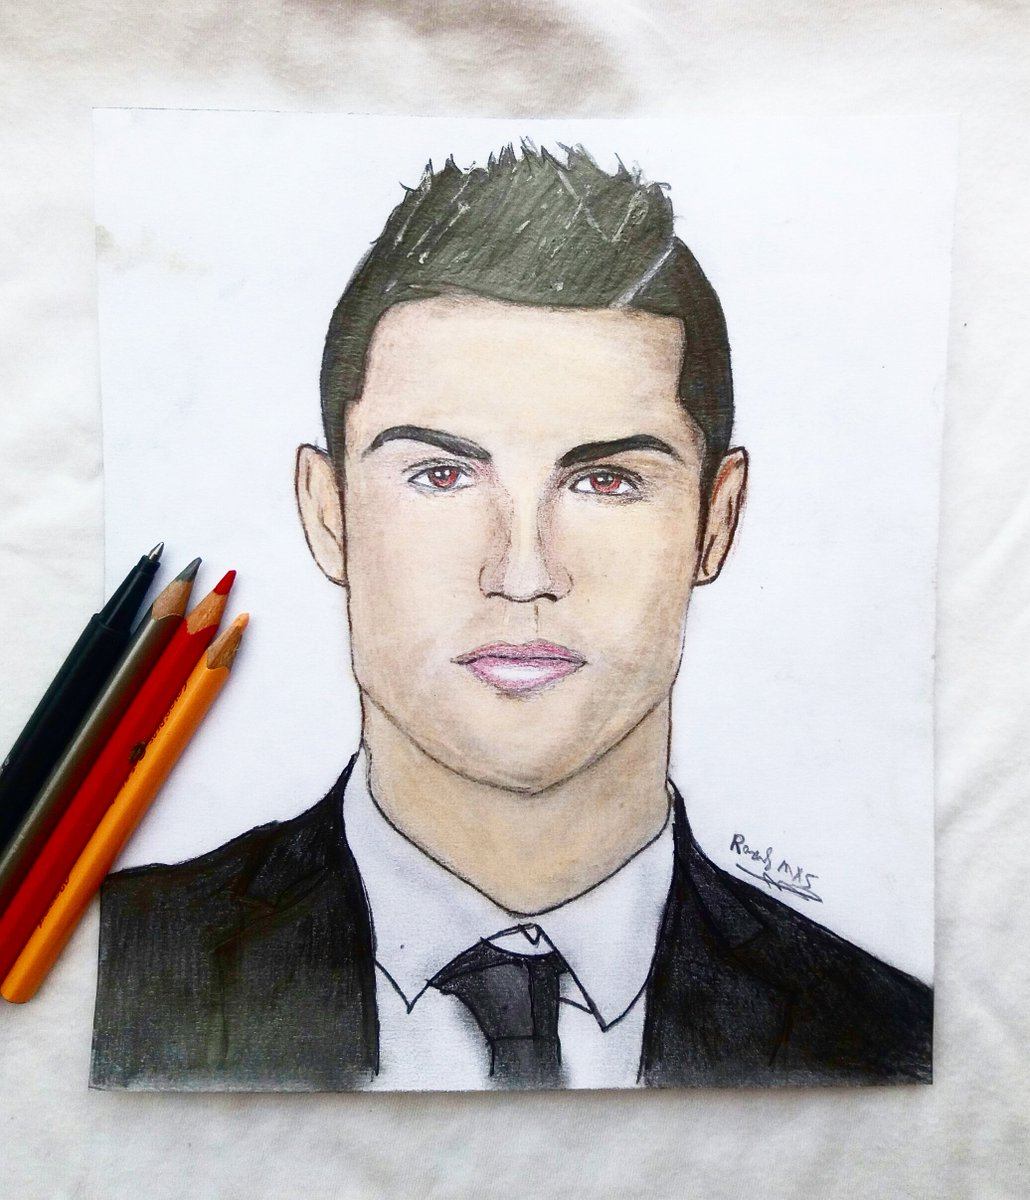 Raouf mxs on twitter my drawing of cristiano ronaldo cristiano